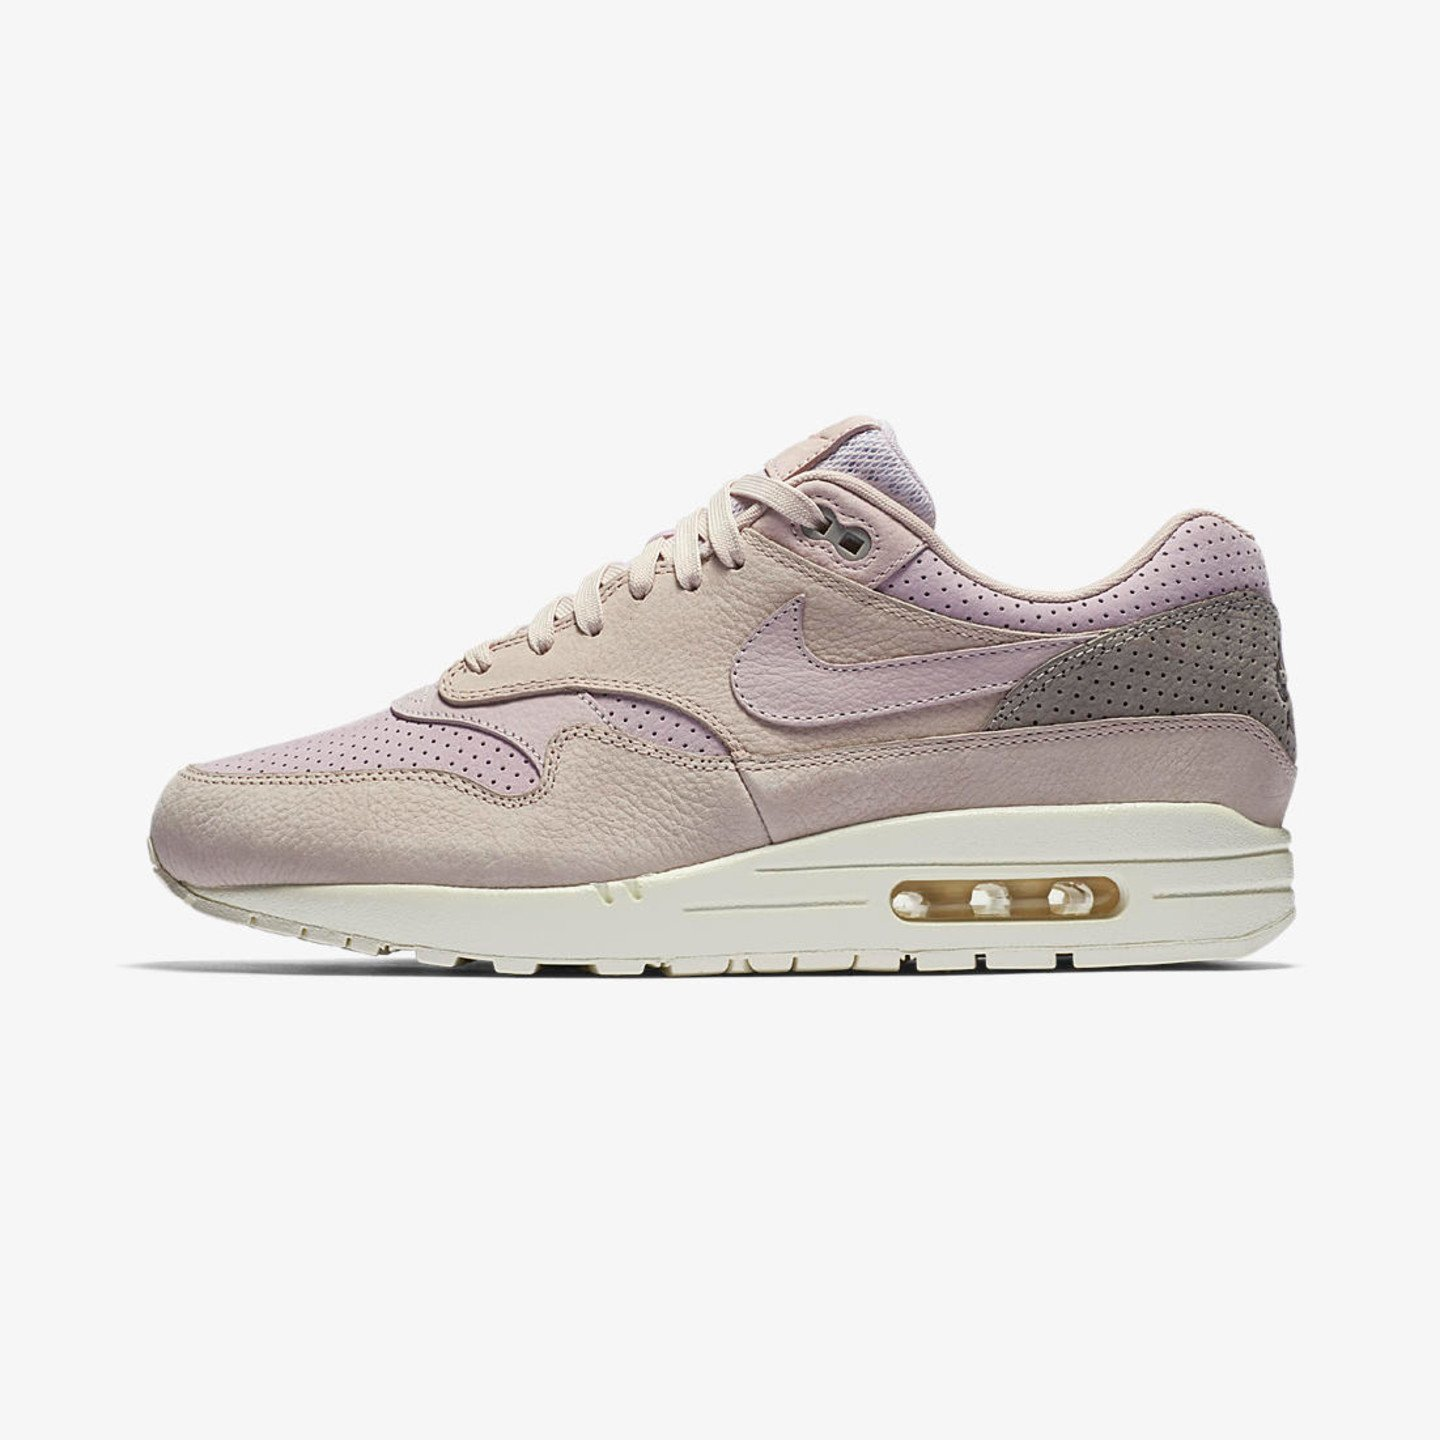 Nike Air Max 1 Pinnacle Arctic Pink 859554-600